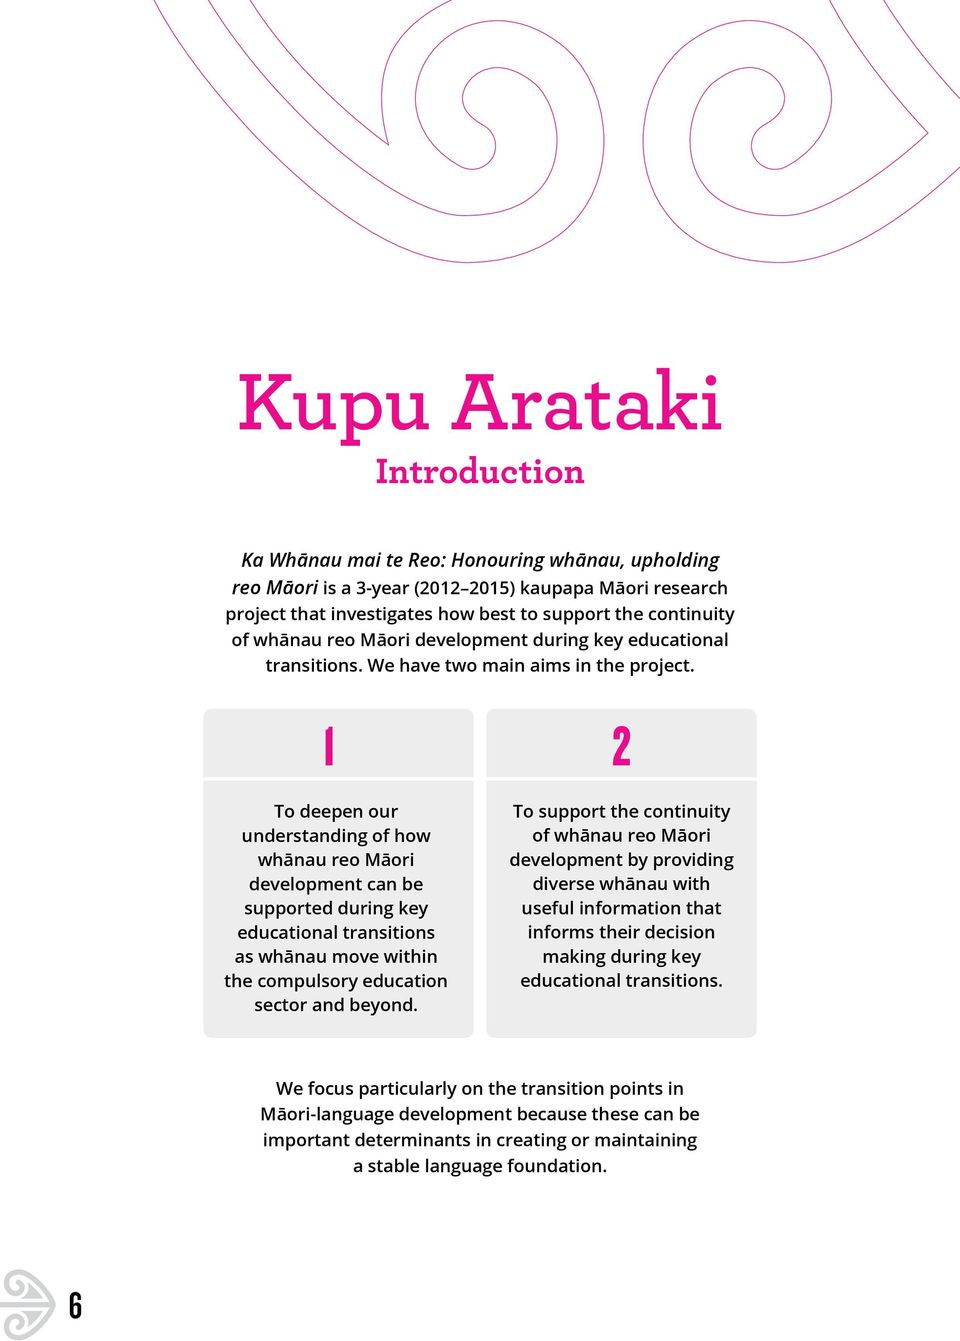 1 2 To deepen our understanding of how whānau reo Māori development can be supported during key educational transitions as whānau move within the compulsory education sector and beyond.